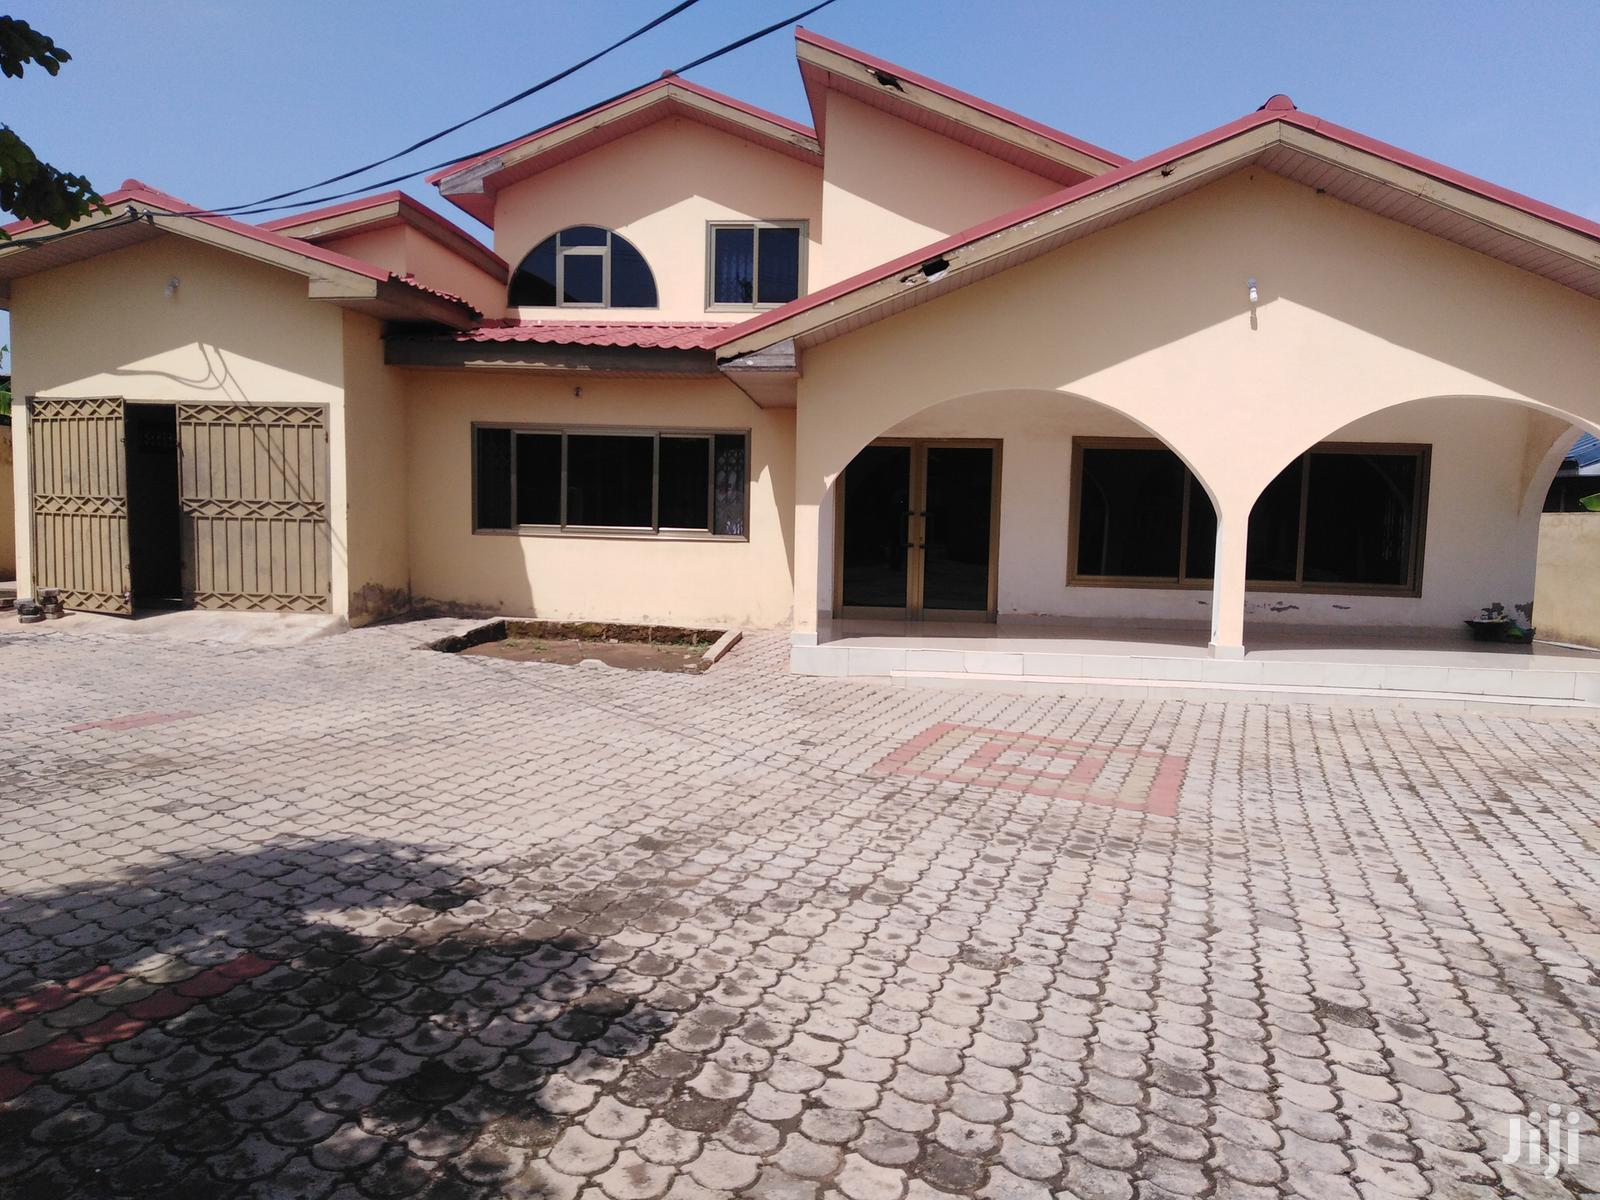 5 Bed Rooms for Rent